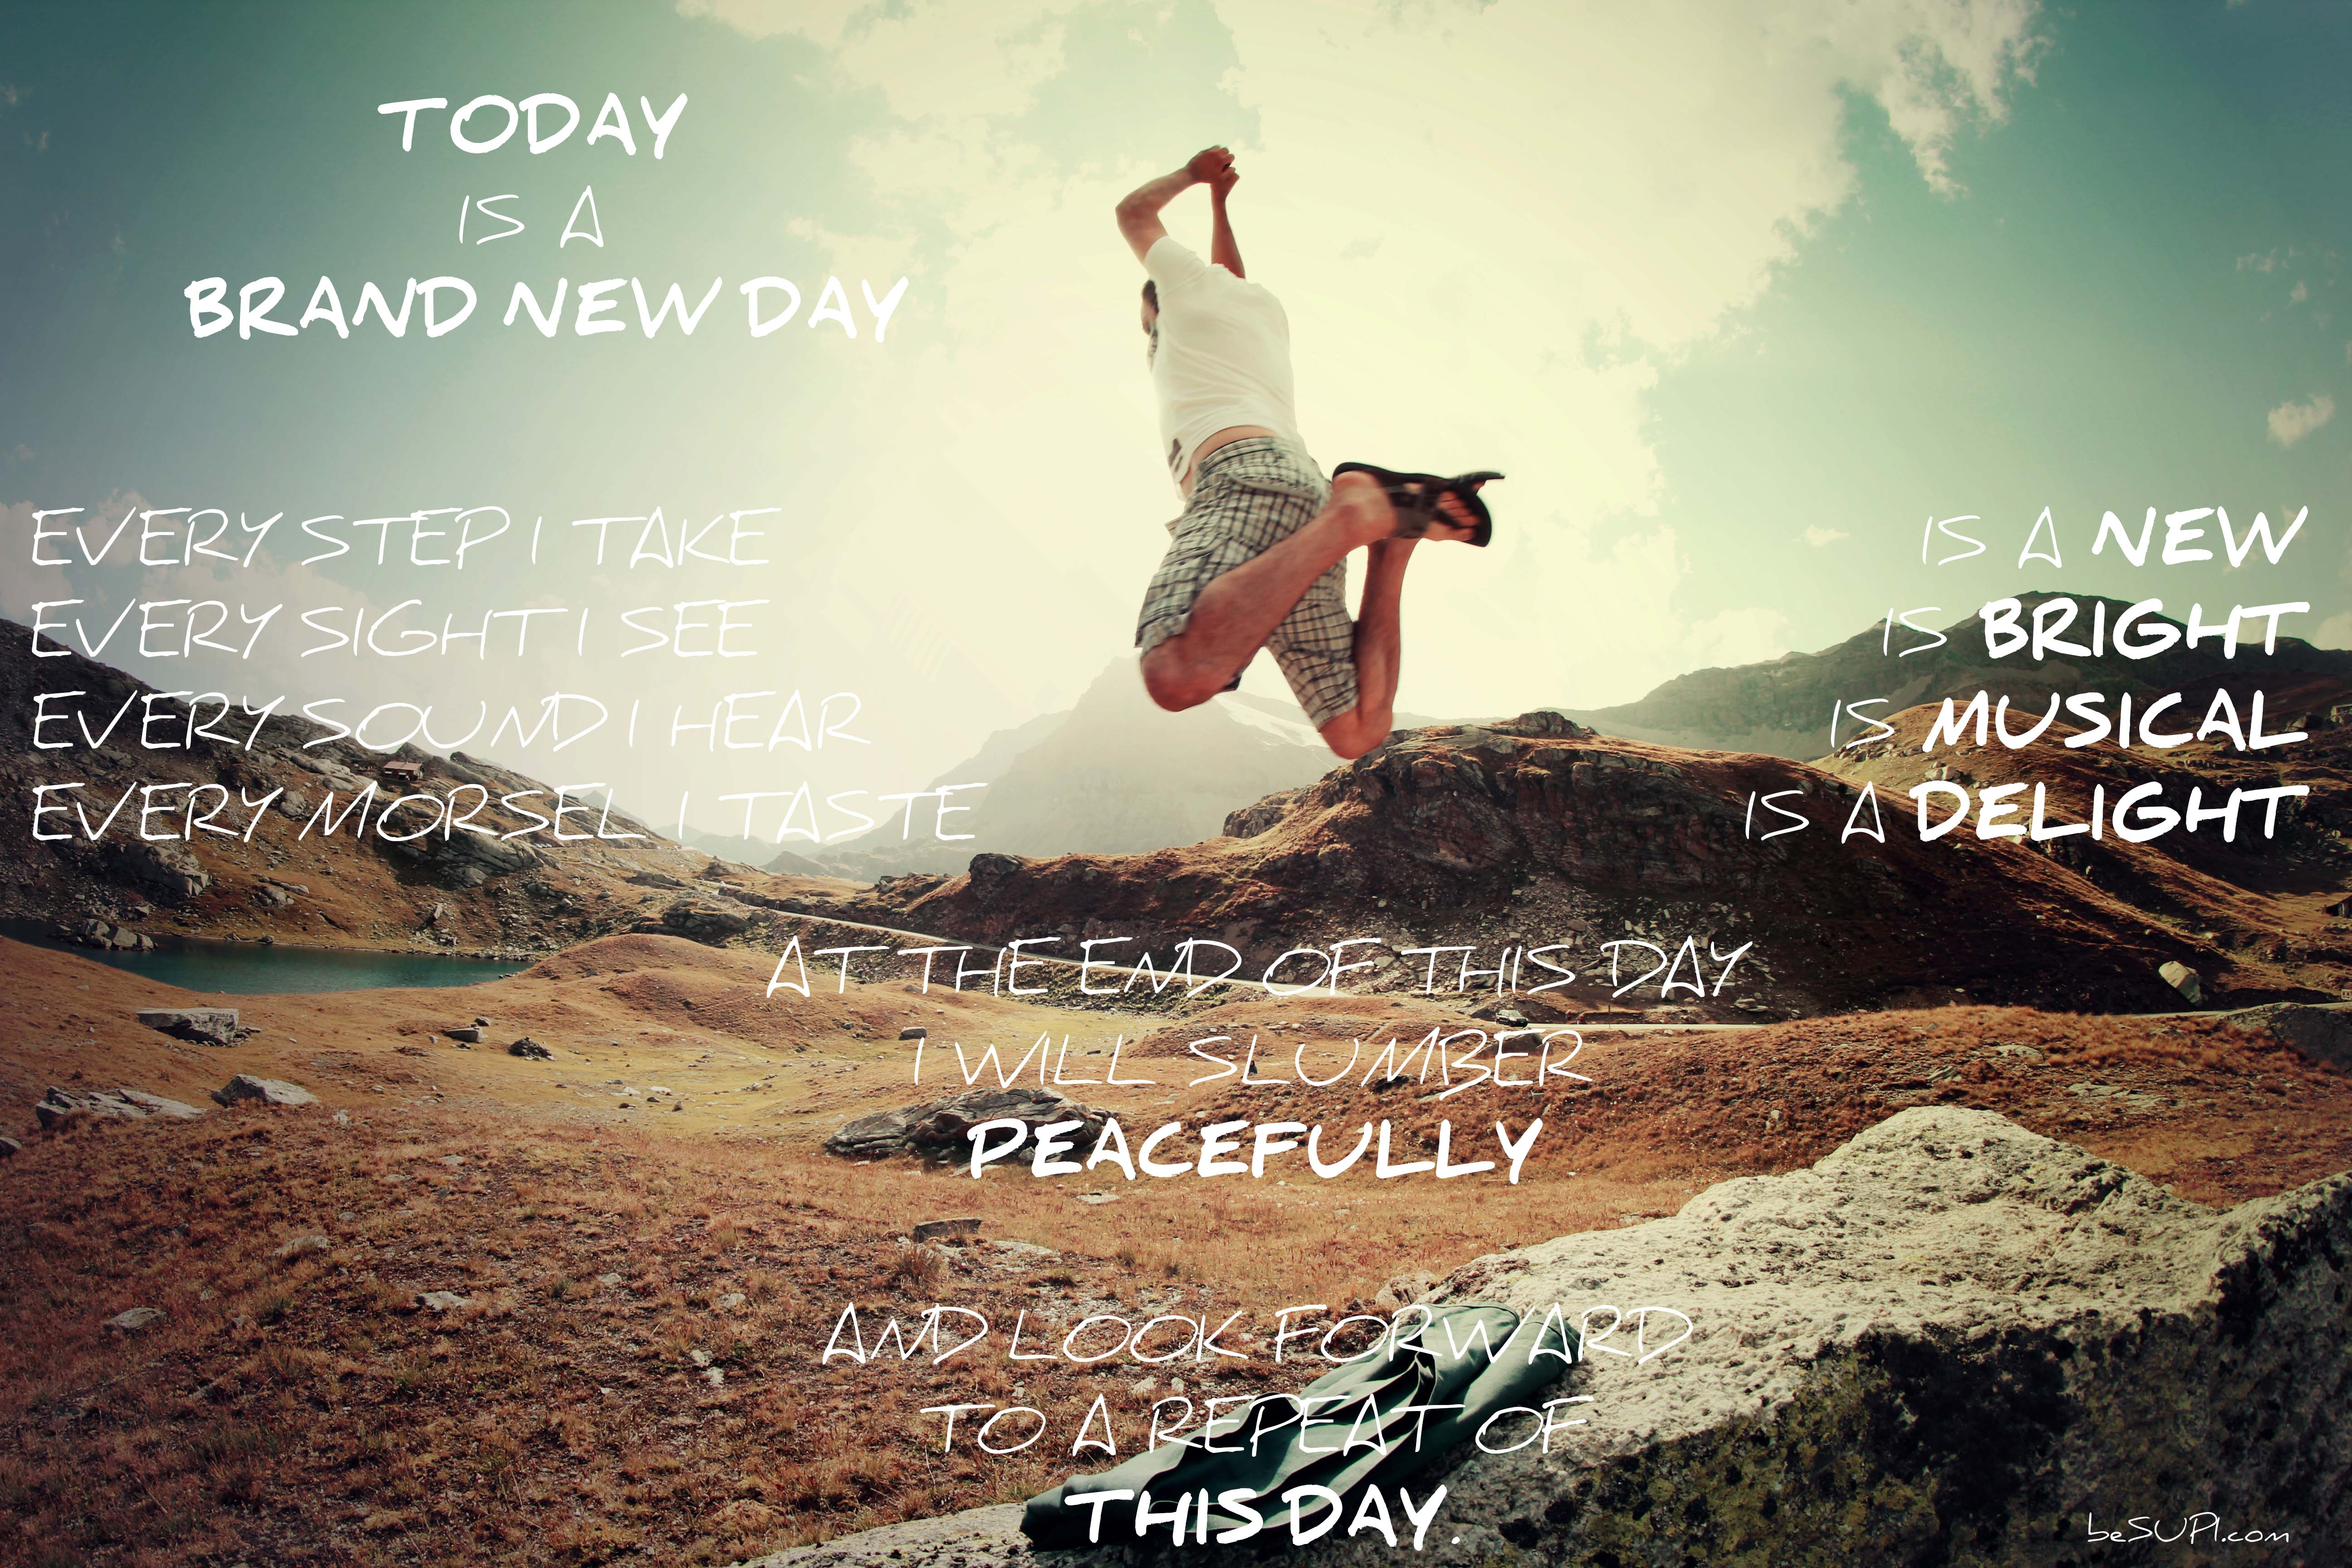 Everyday Is A Brand New Day Quotes: Mantra Of The Week: Today Is A Brand New Day. Every Step I